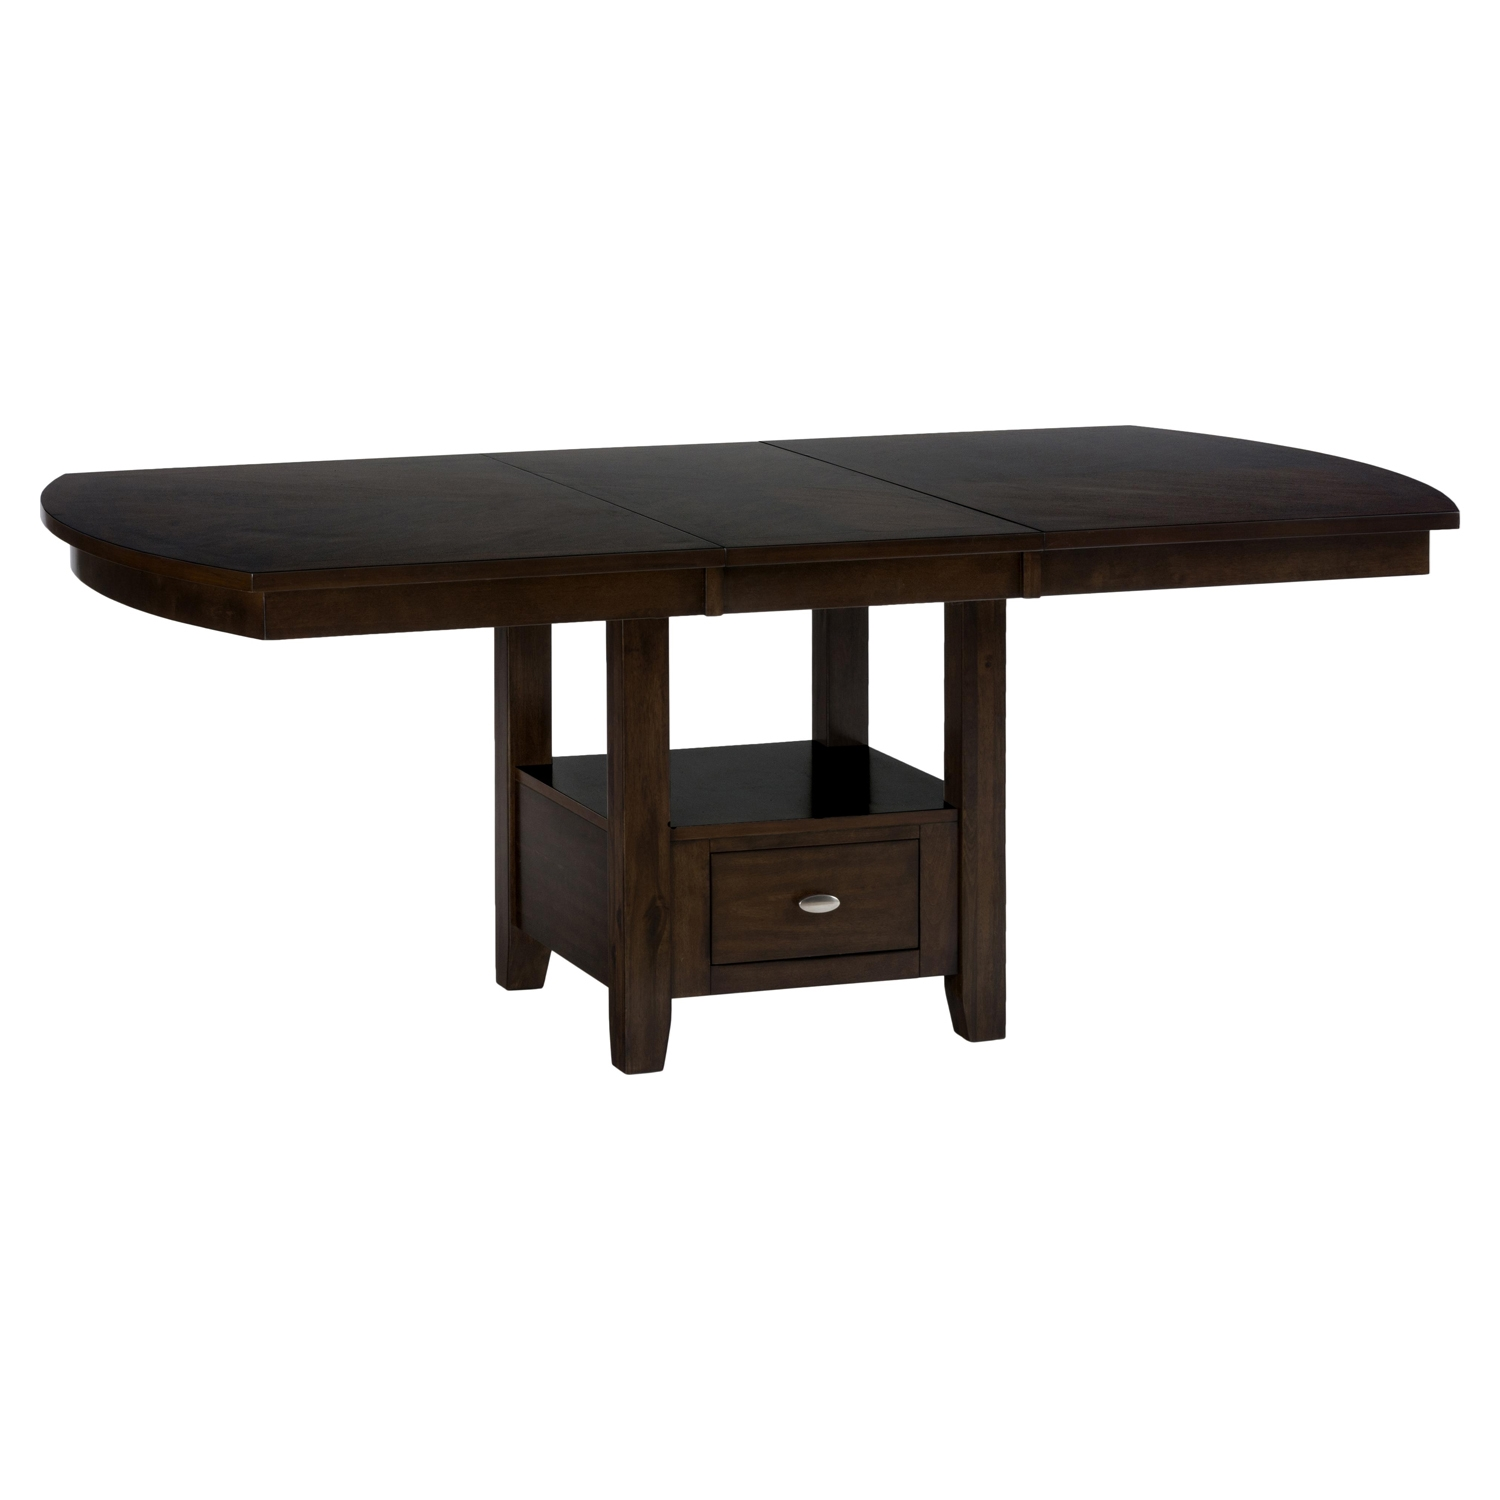 Mirandela High/Low Dining Table with Storage Base - JOFR-836-78TBKT